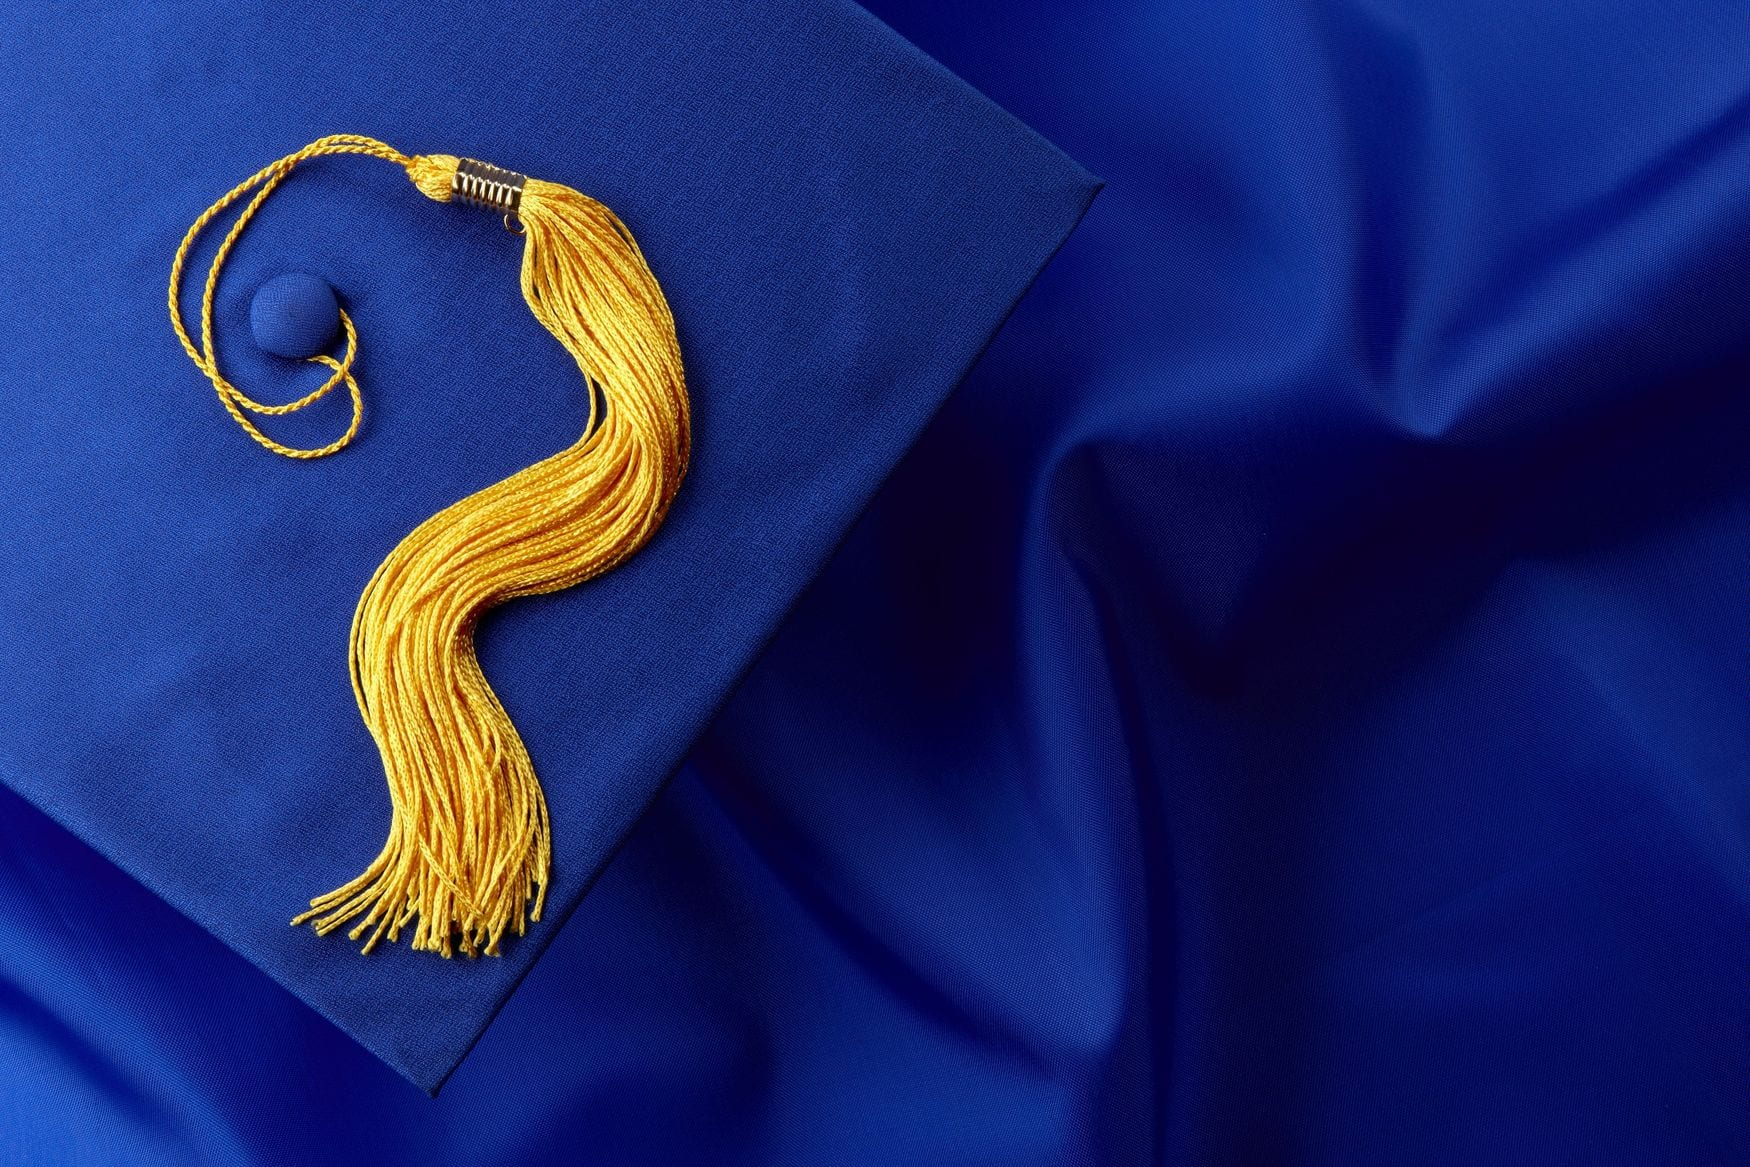 Laurus College Commencement Ceremony to be held on July 23, 2016